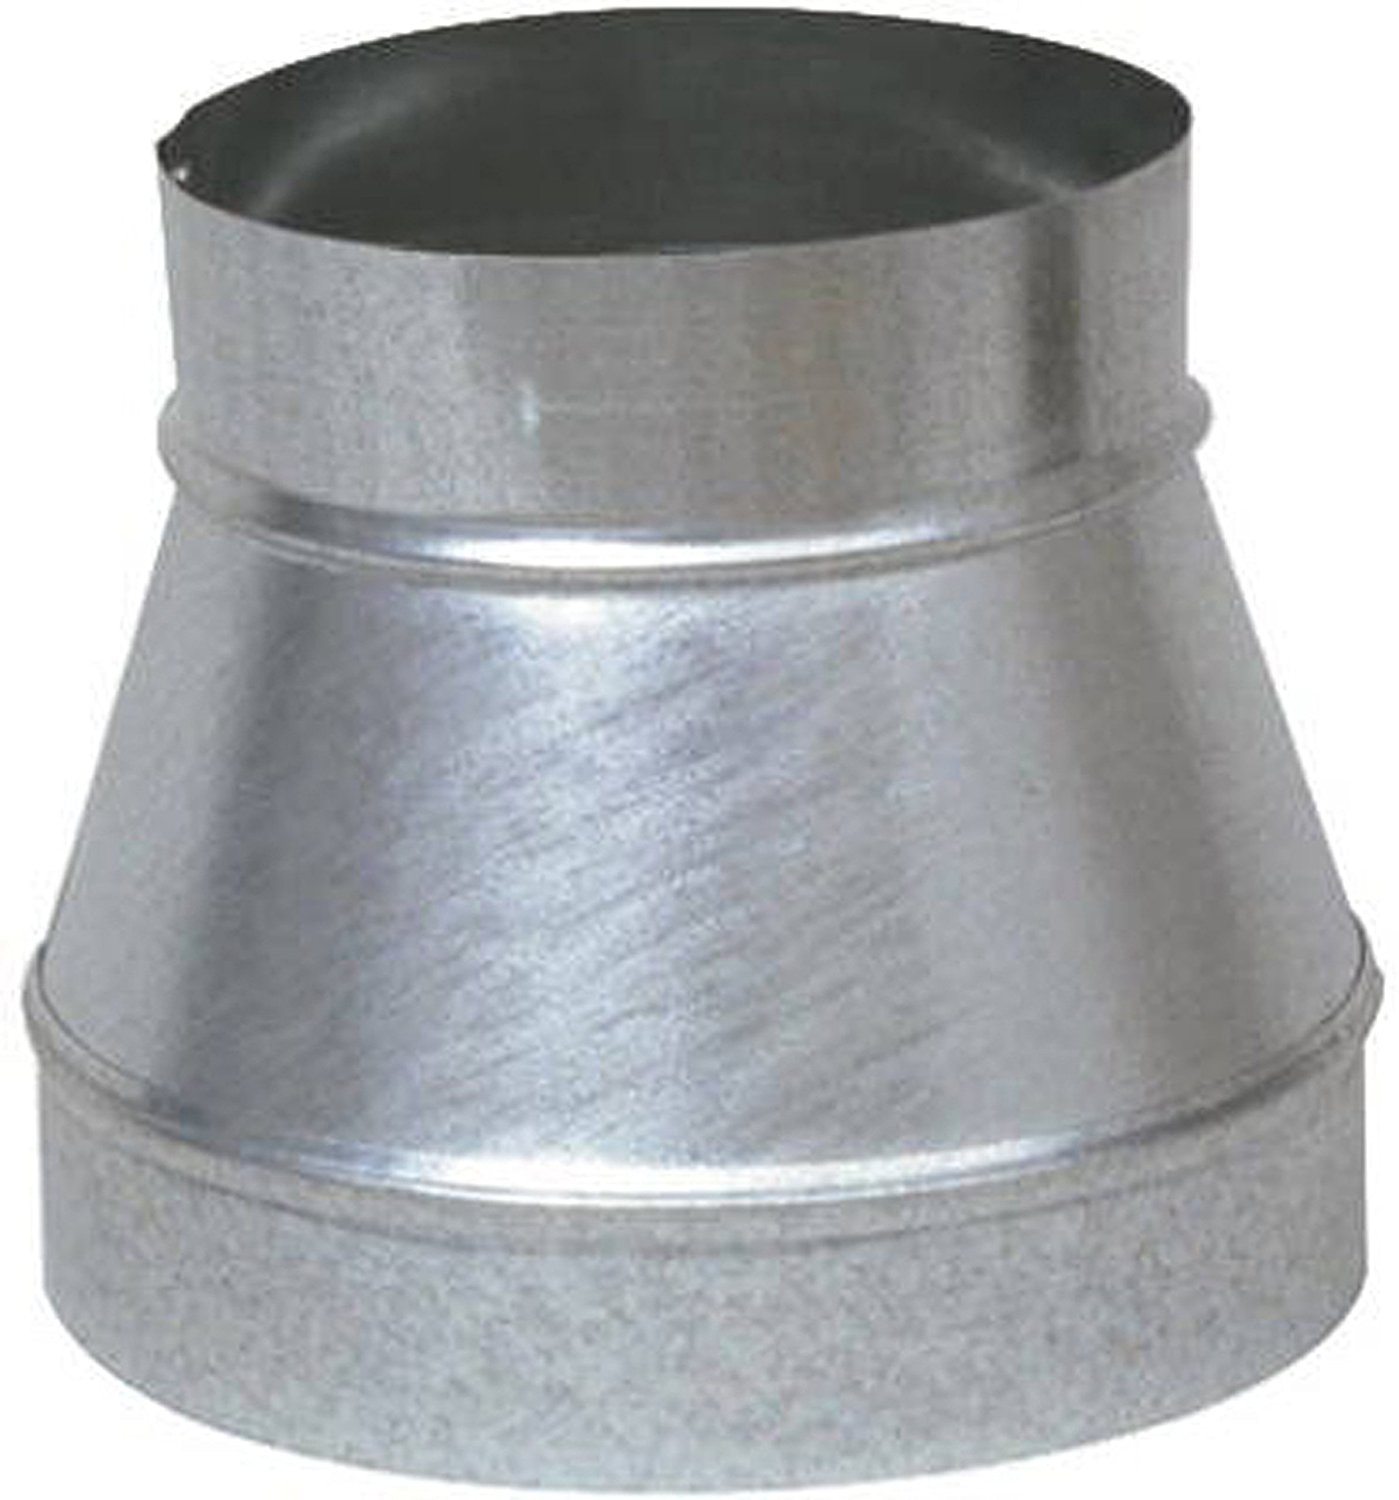 Duct Reducer-Ductwork-Heating Duct-Air Duct-Ventilation Fittings